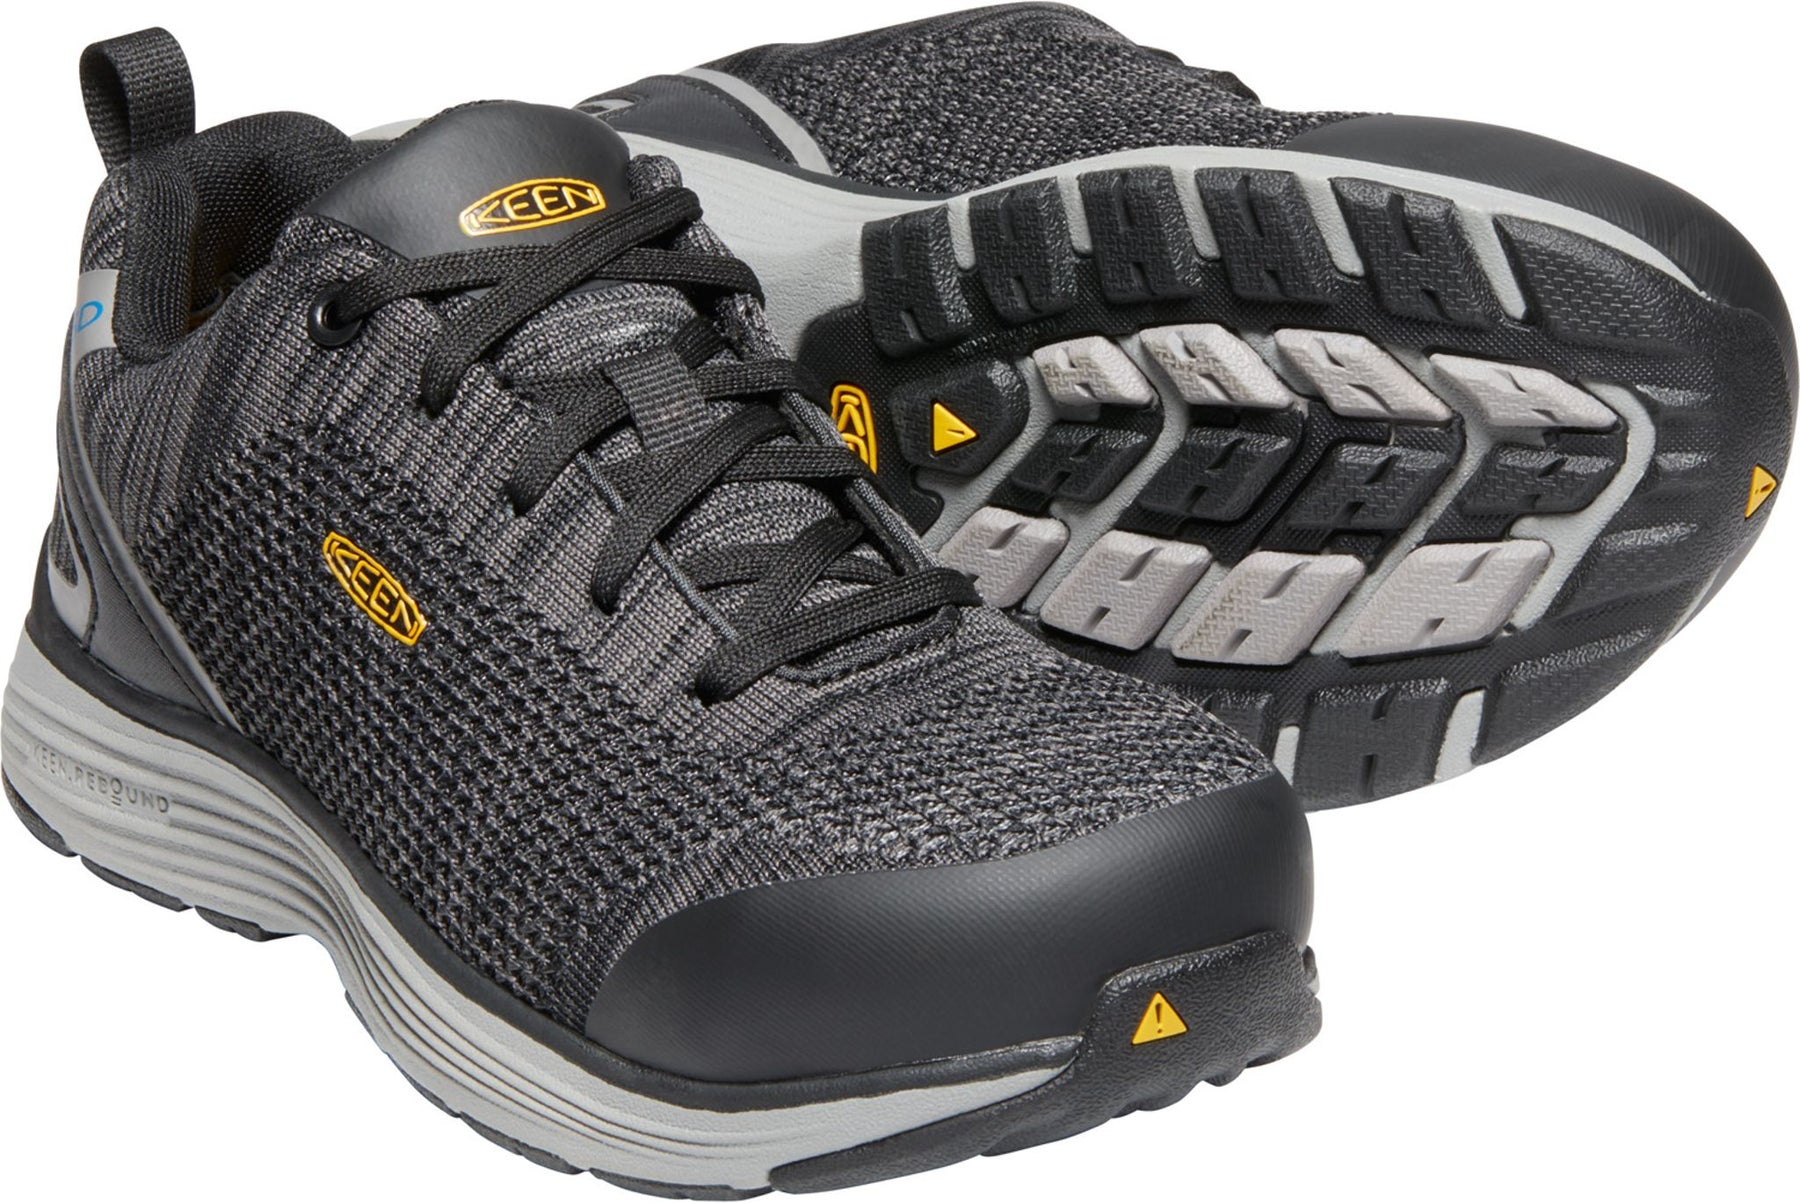 Keen Utility Sparta Women's Work Shoe Alum Toe